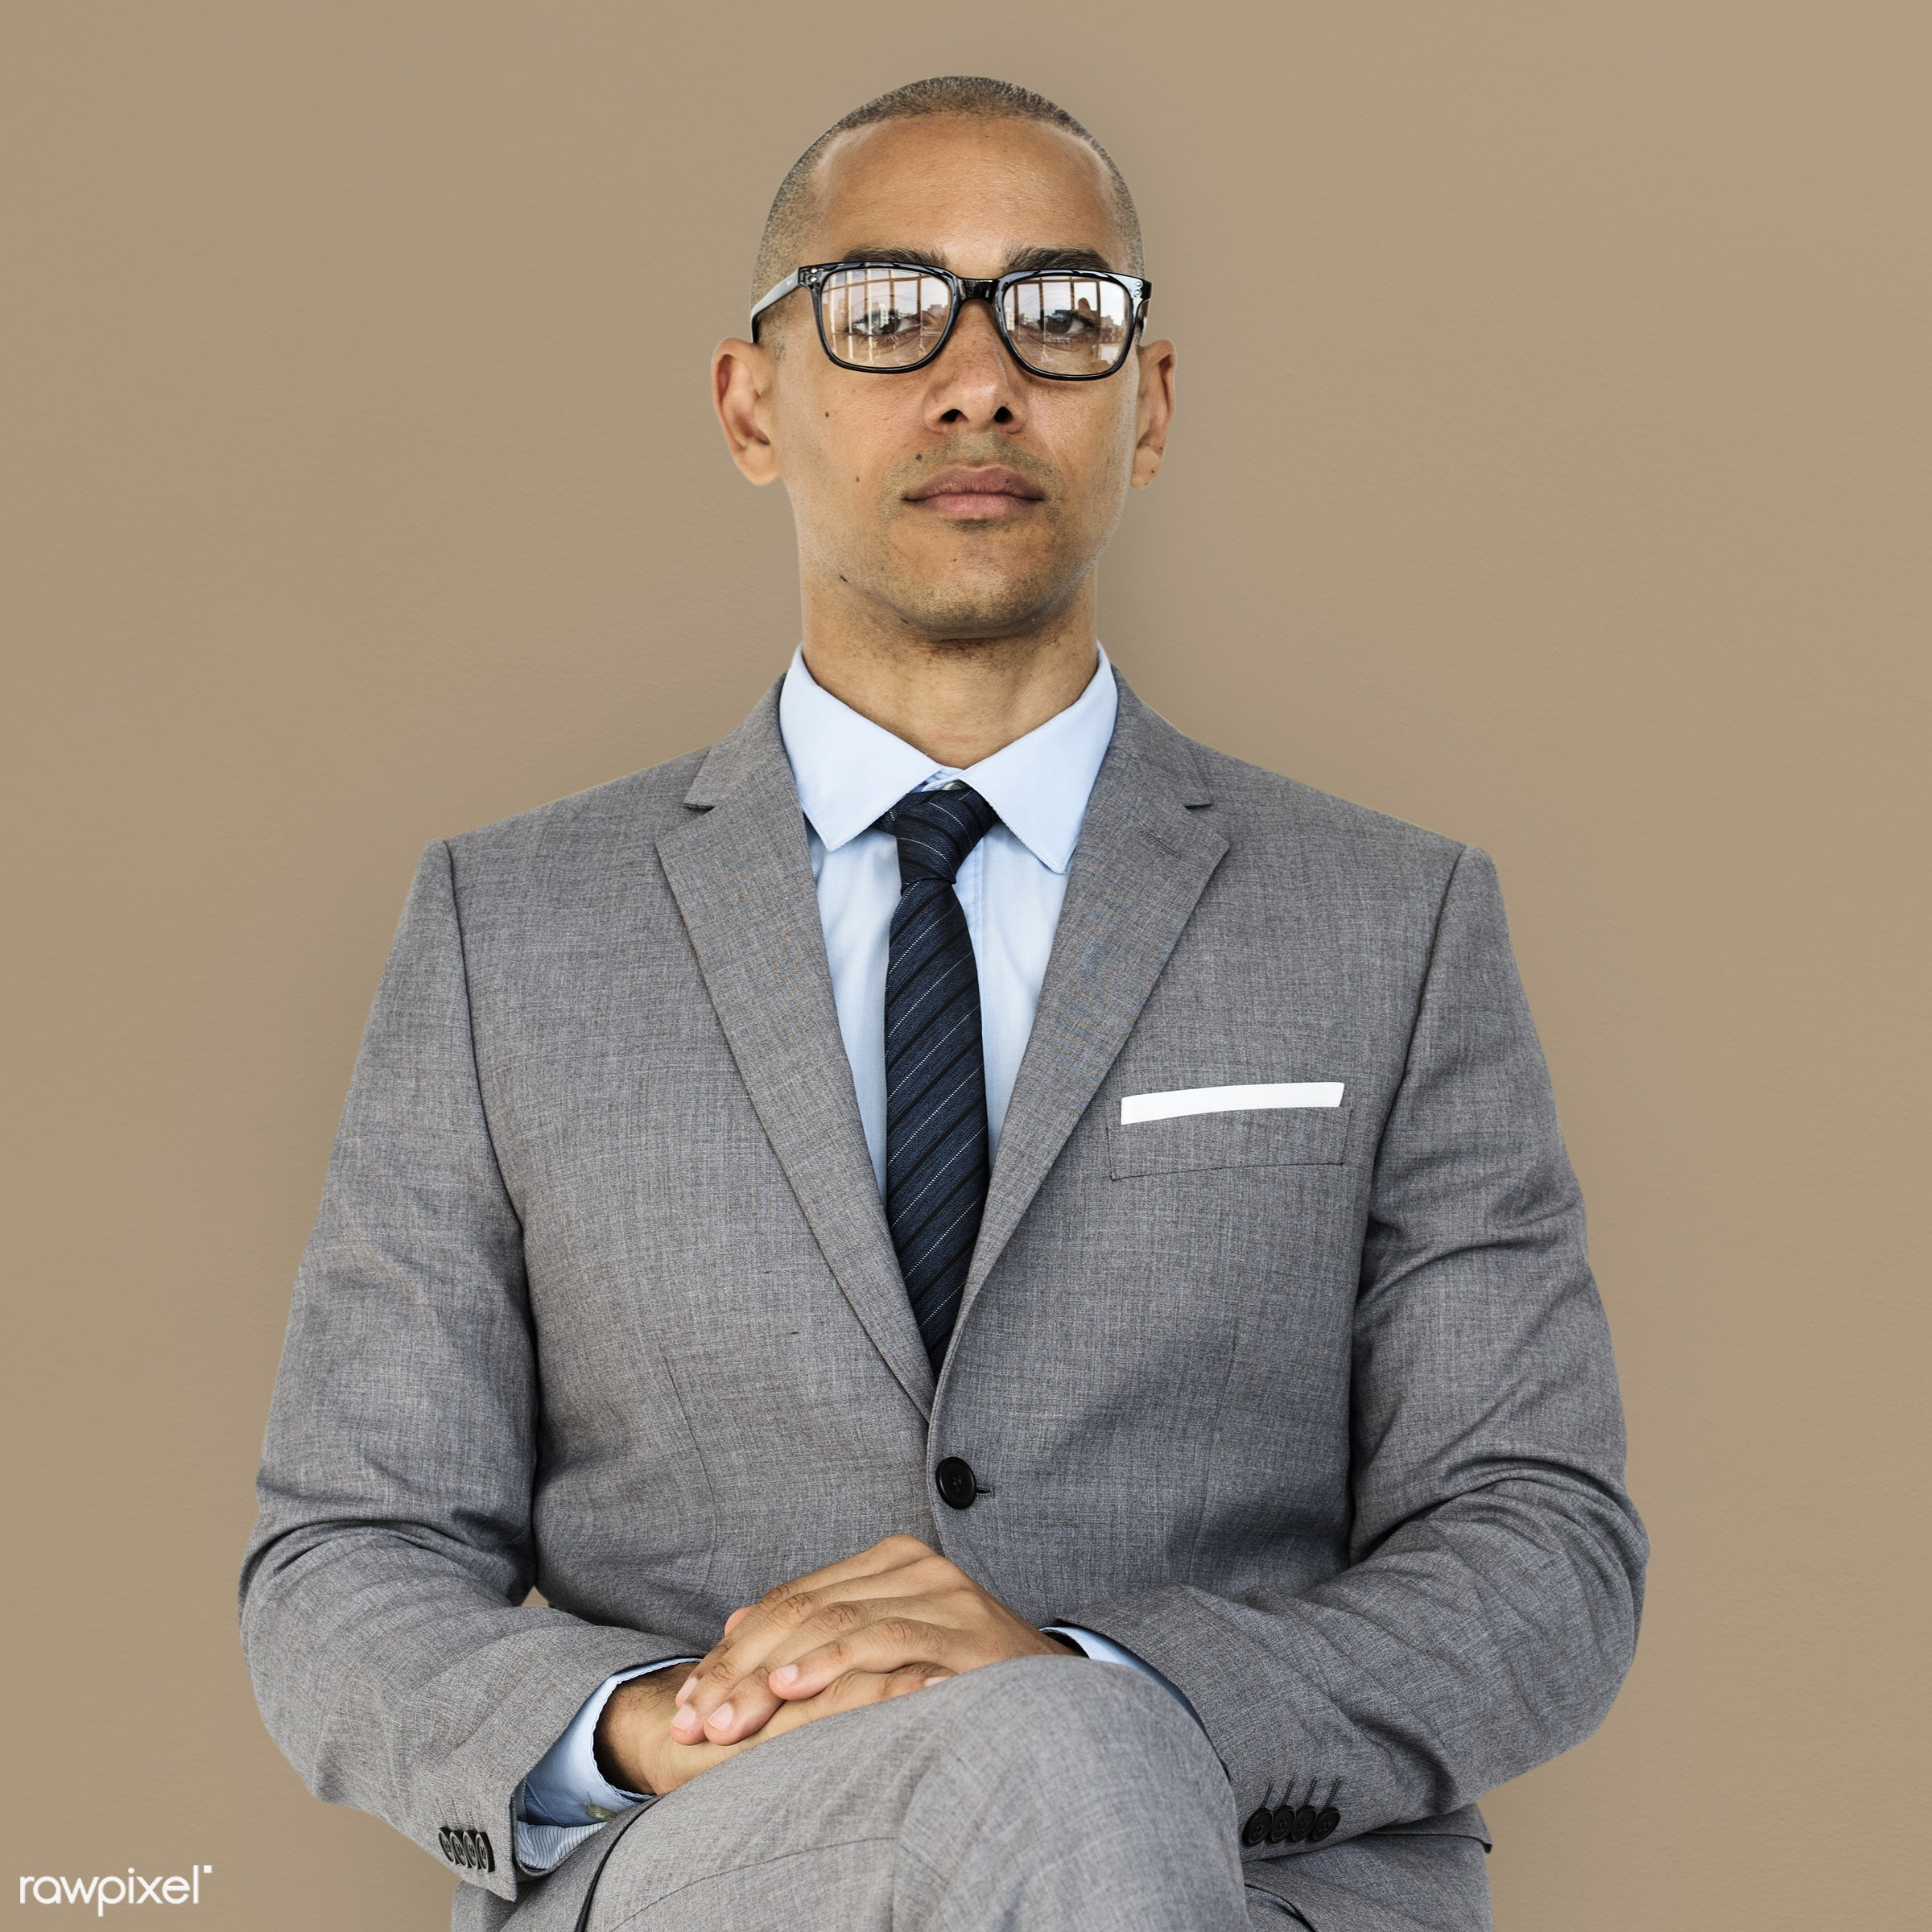 expression, studio, face, person, glasses, courage, carefree, people, business, businessman, fresh, casual, mixed race, man...